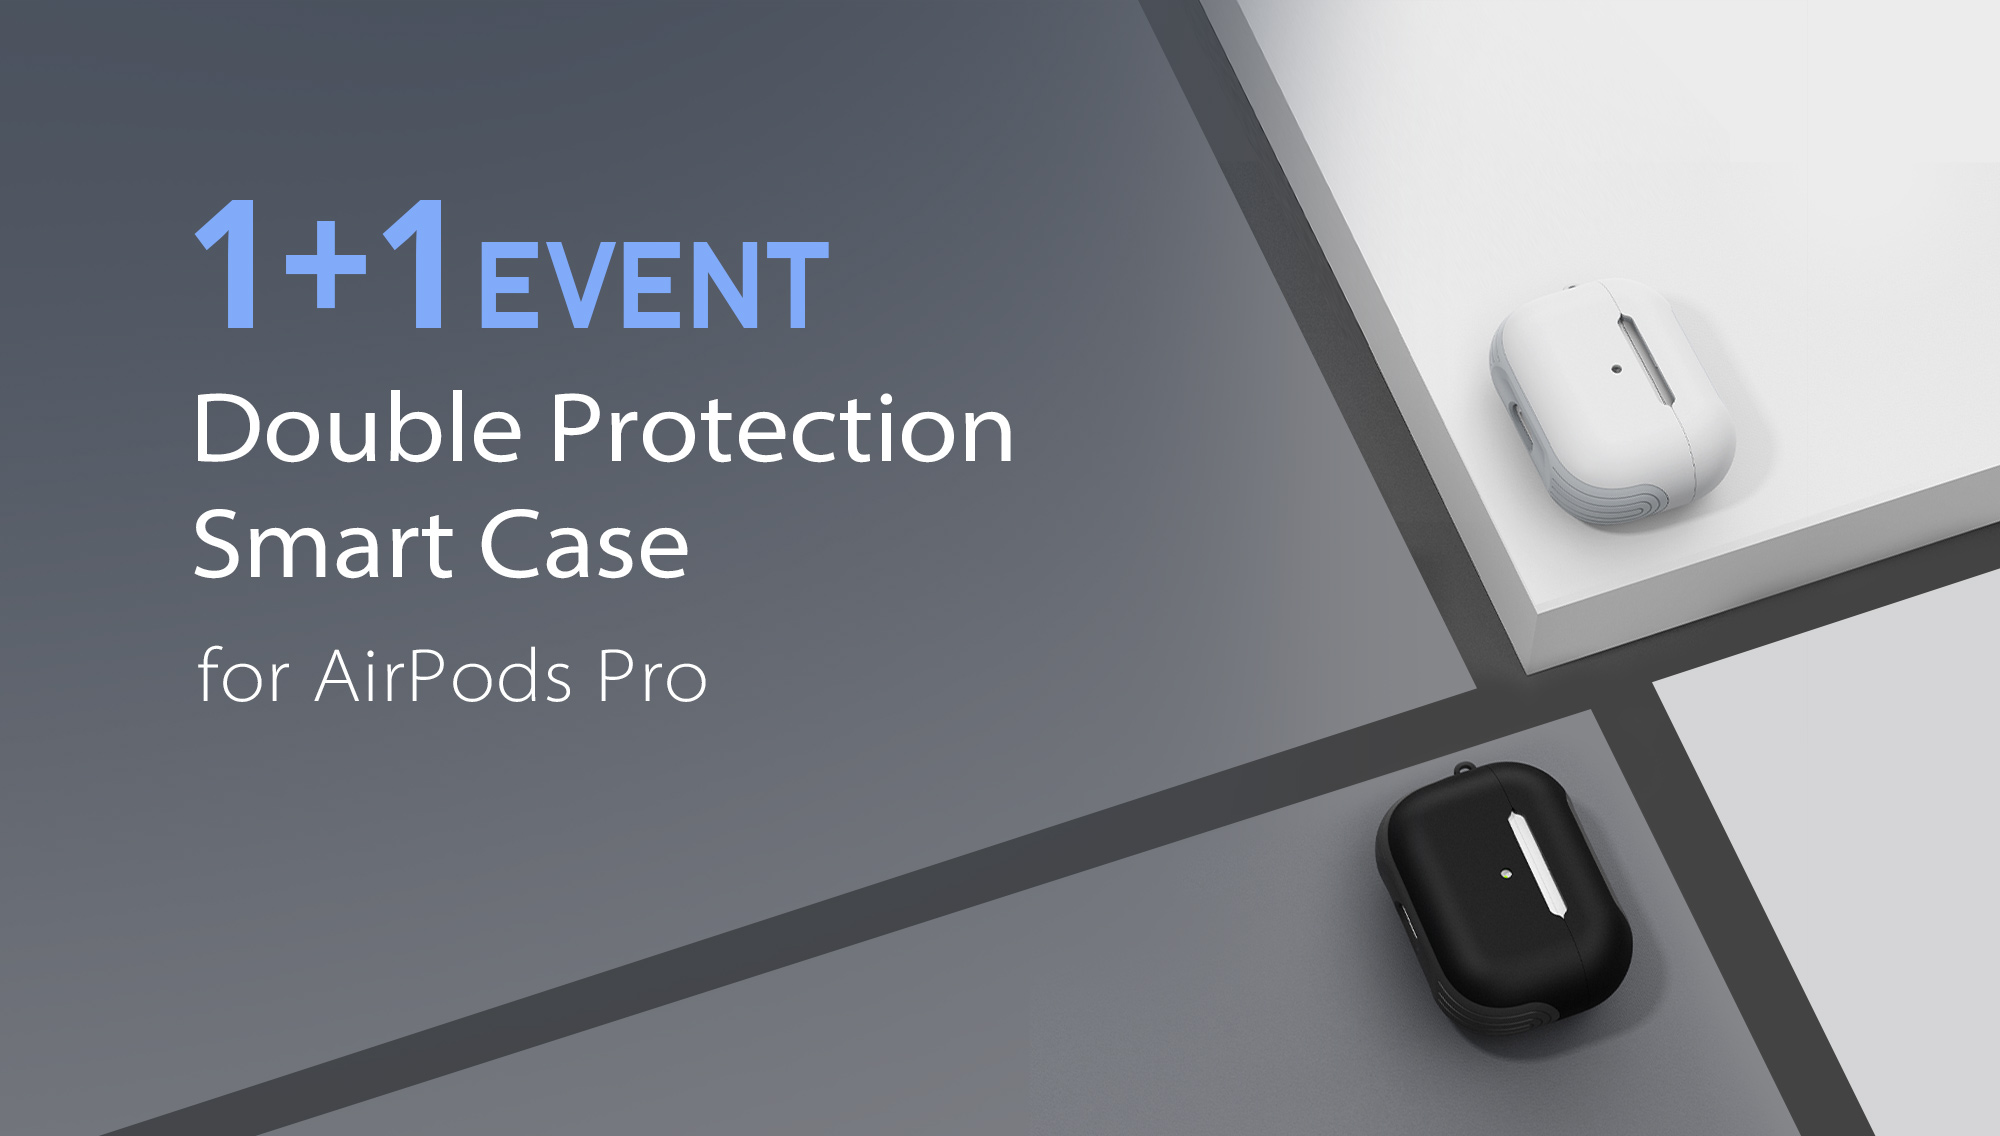 AirPods Pro case 1+1